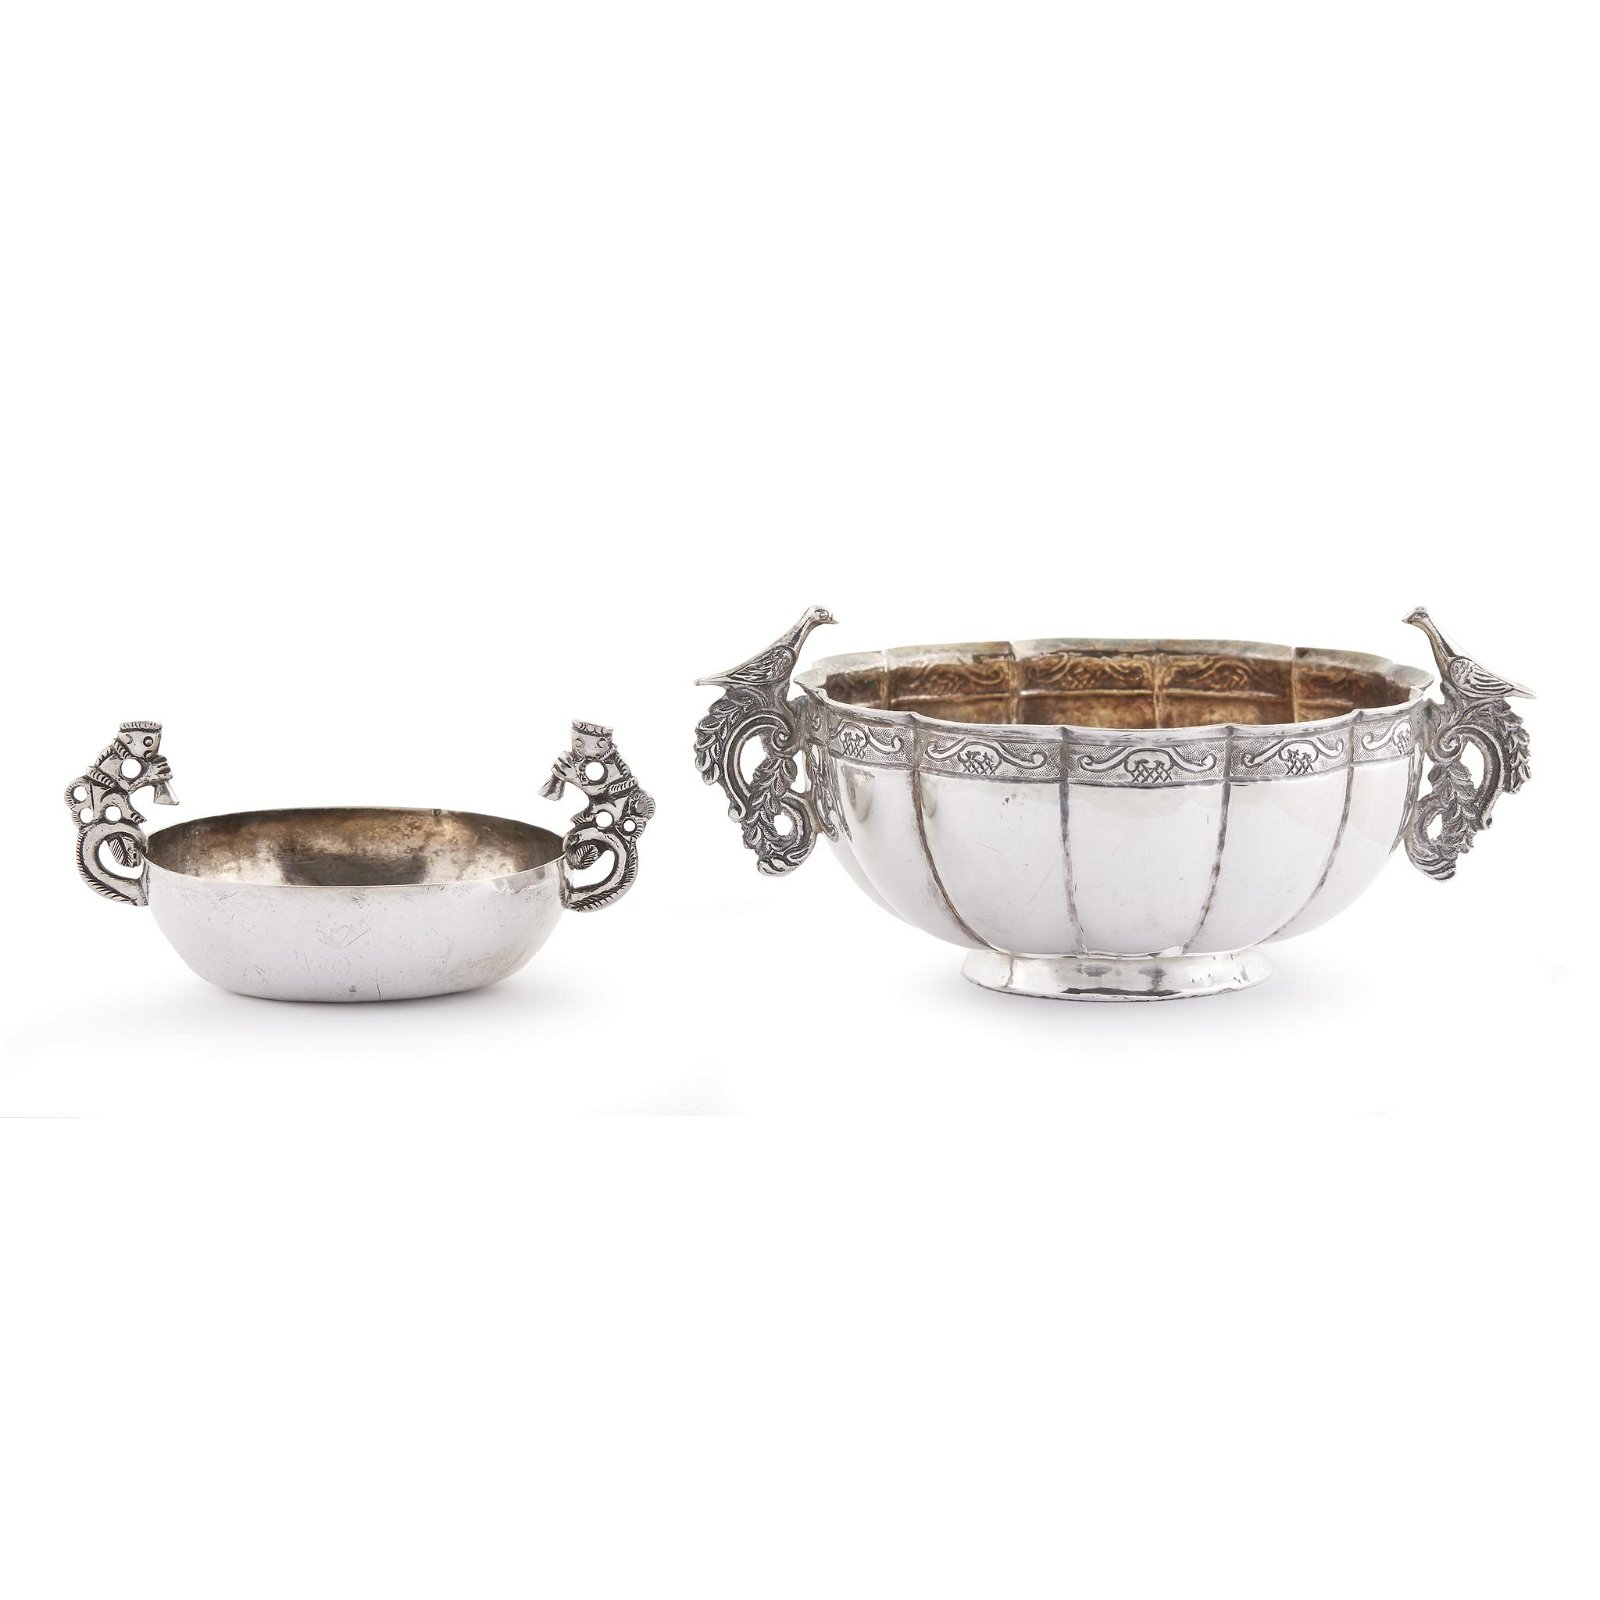 Two Spanish Colonial silver drinking vessels, Probably